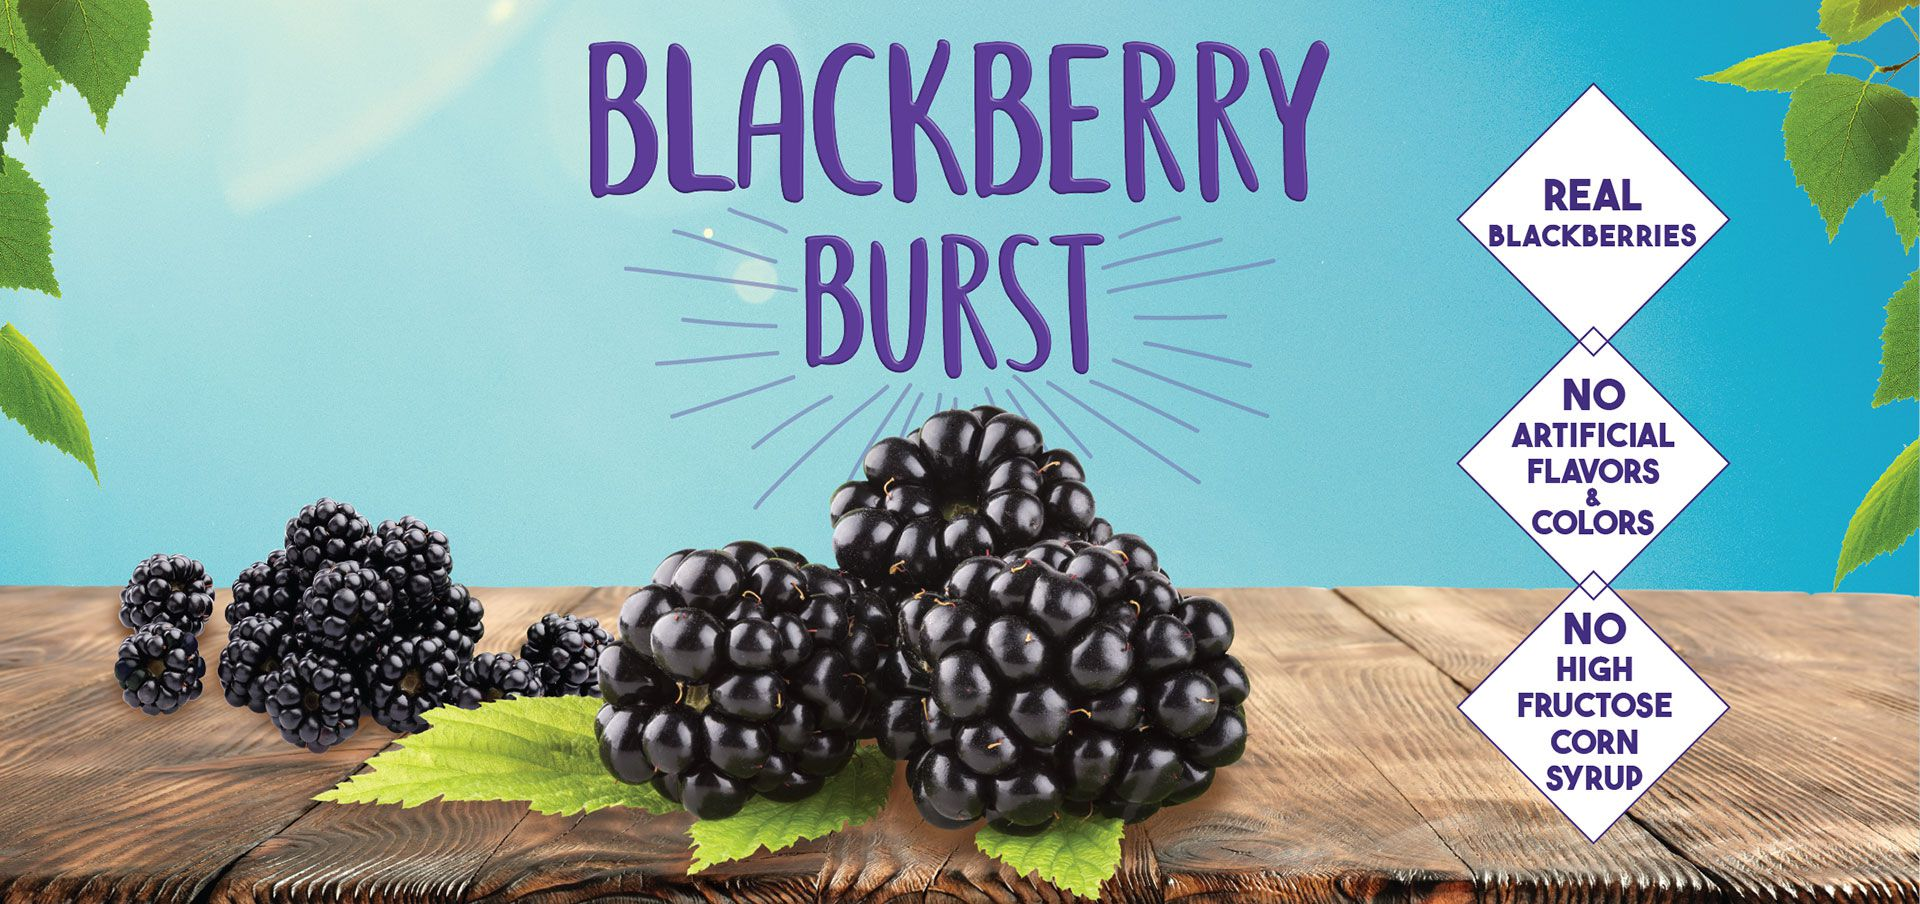 blackberry burst label image